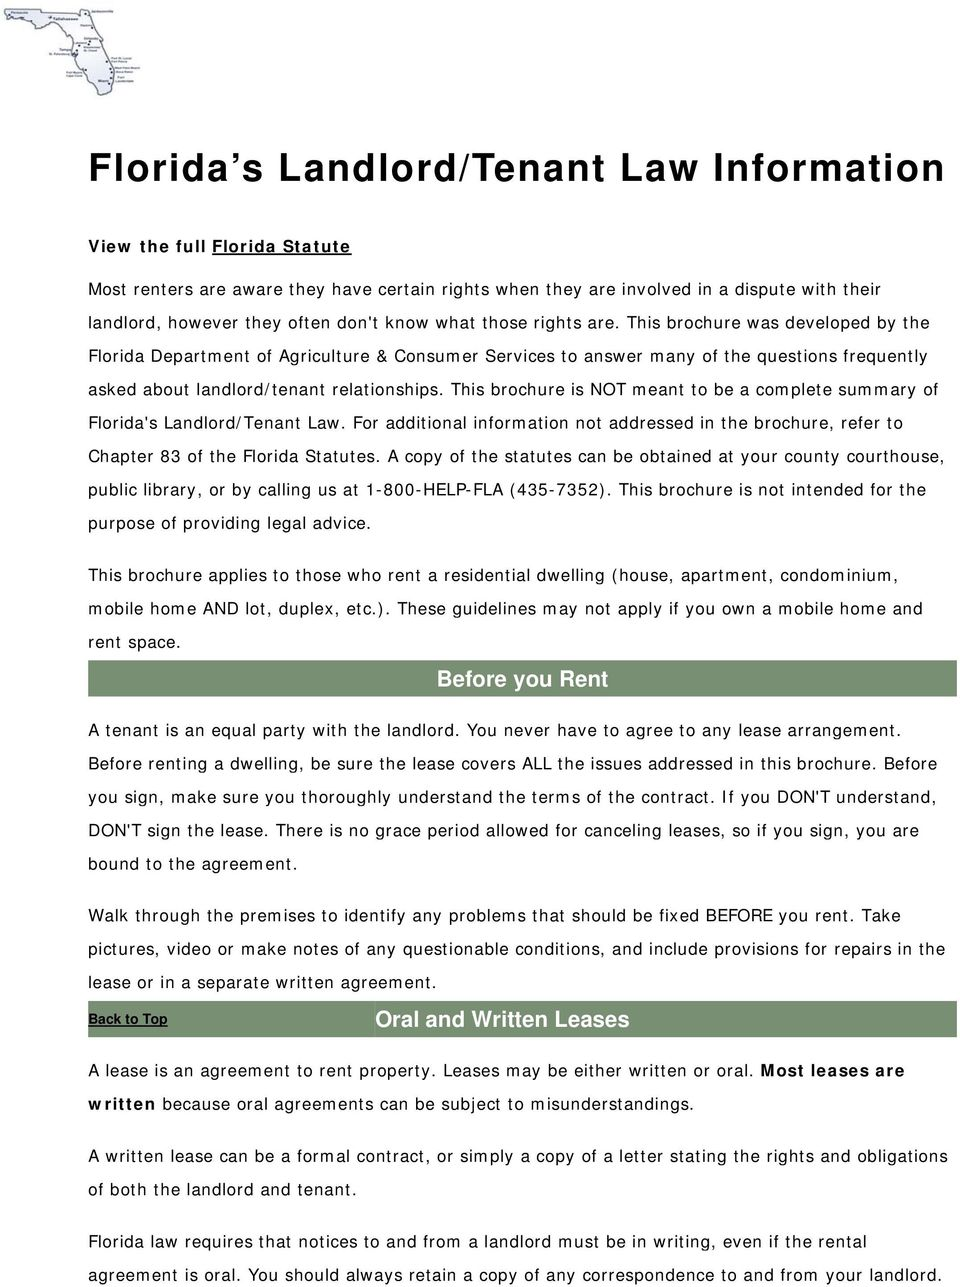 This brochure was developed by the Florida Department of Agriculture & Consumer Services to answer many of the questions frequently asked about landlord/tenant relationships.